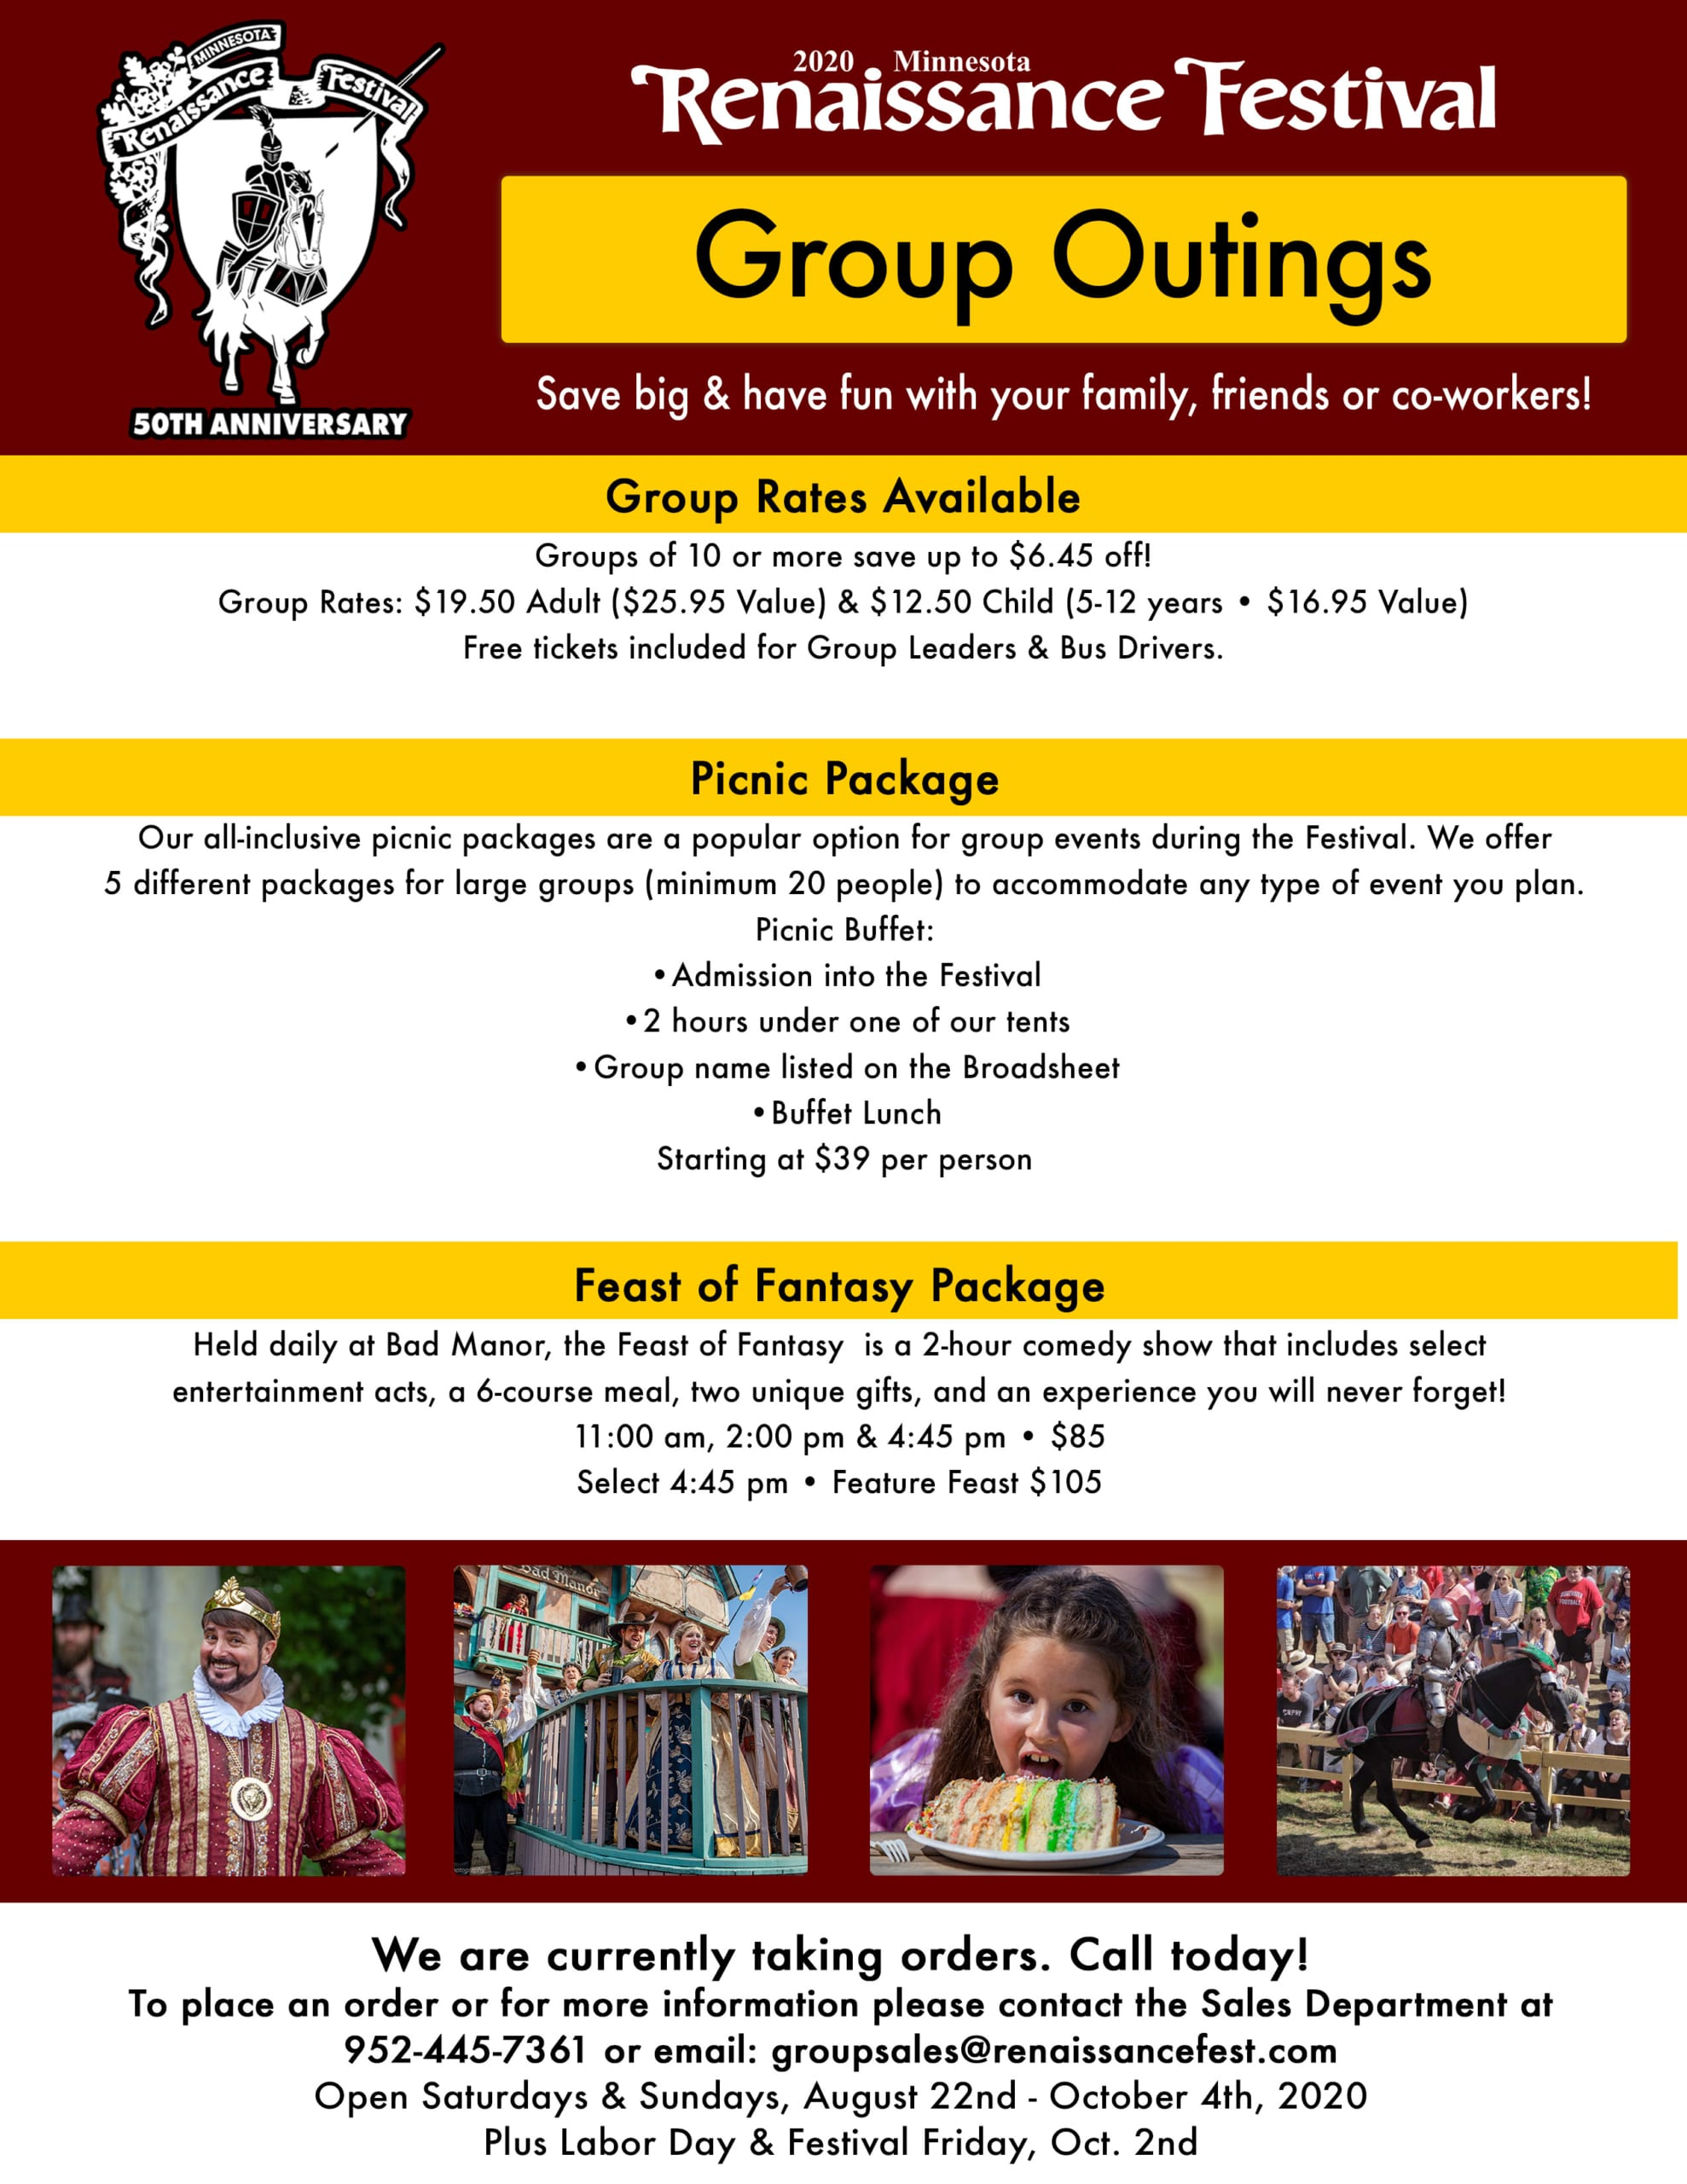 MN Renaissance Festival Group Outings Flyer